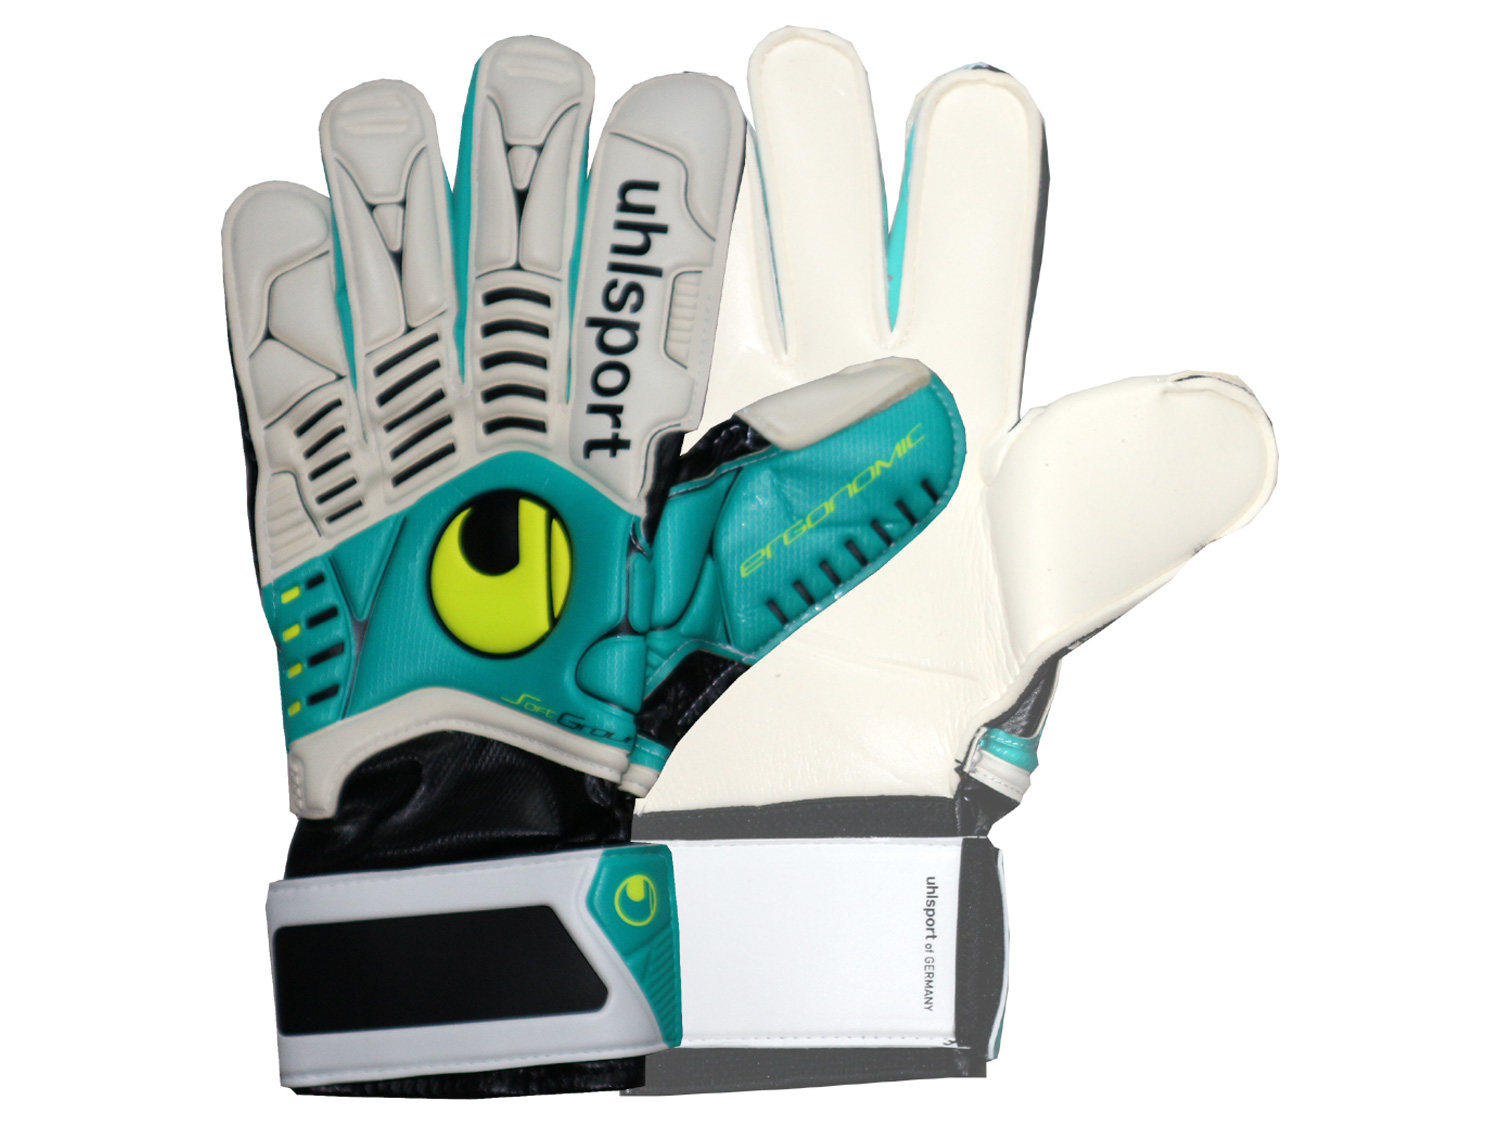 Uhlsport Ergonomic Soft Torwart-Handschuhe